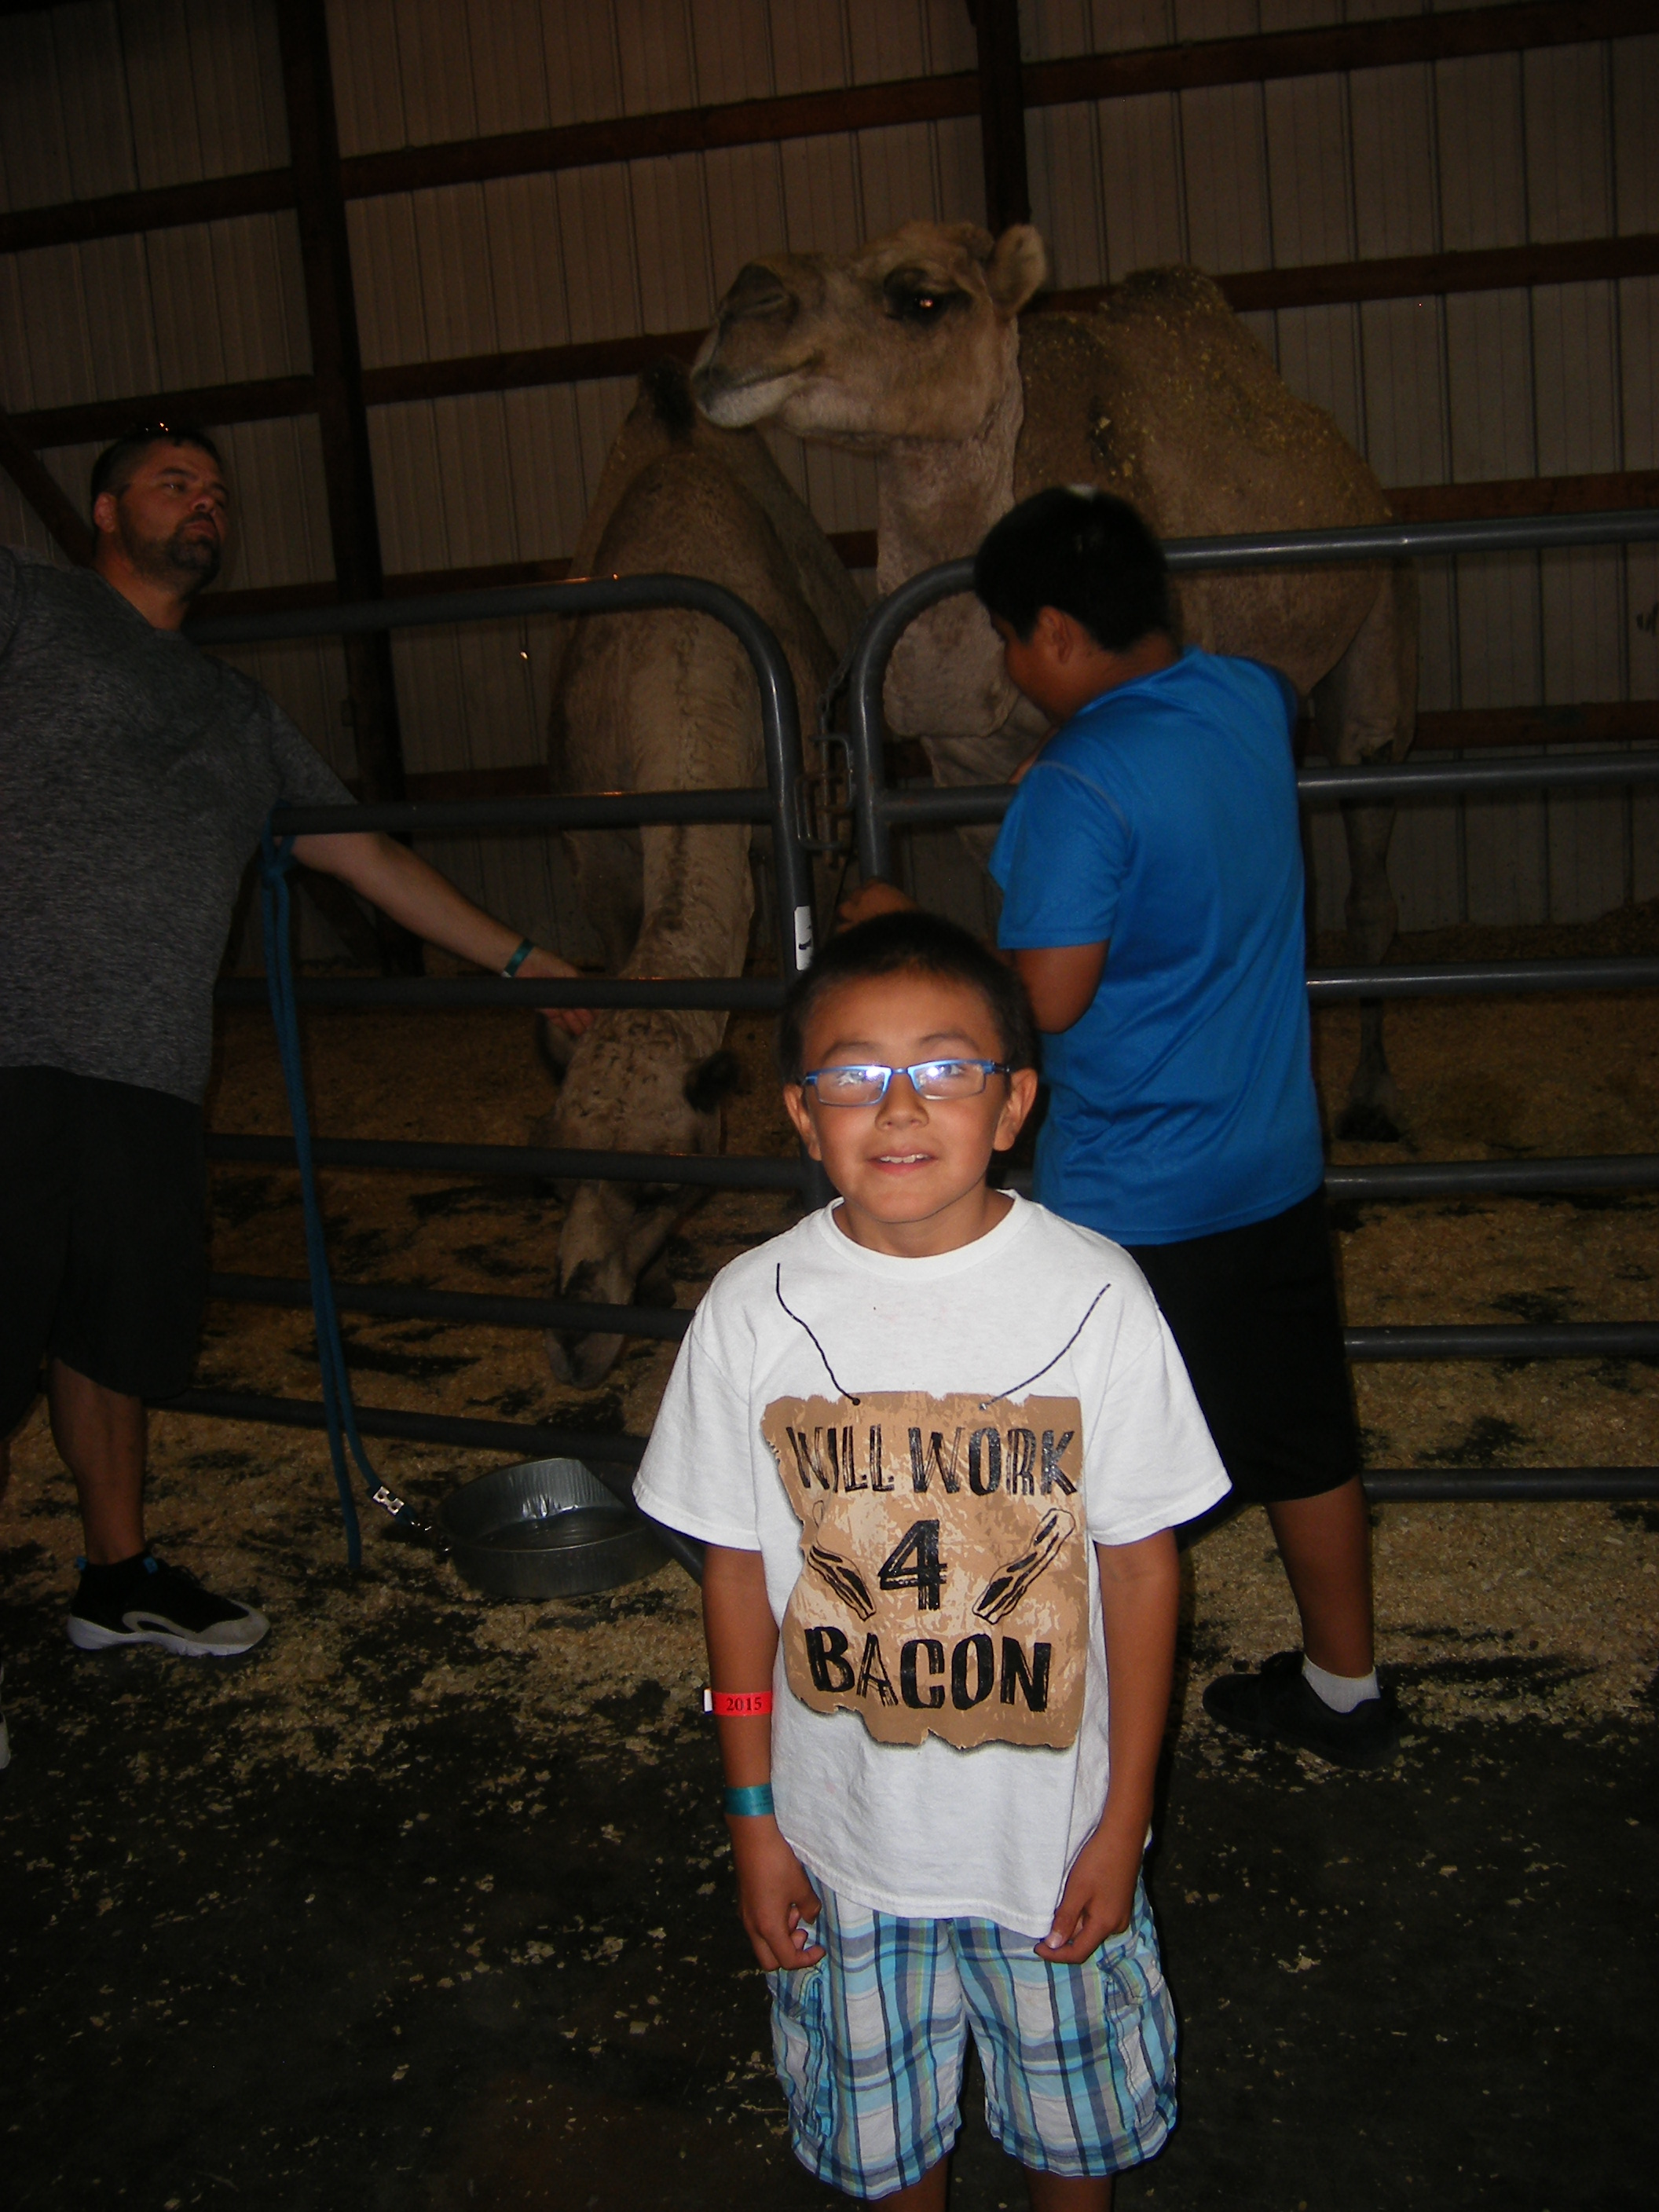 The Lakota(Sioux) students enjoyed feeding the camel.